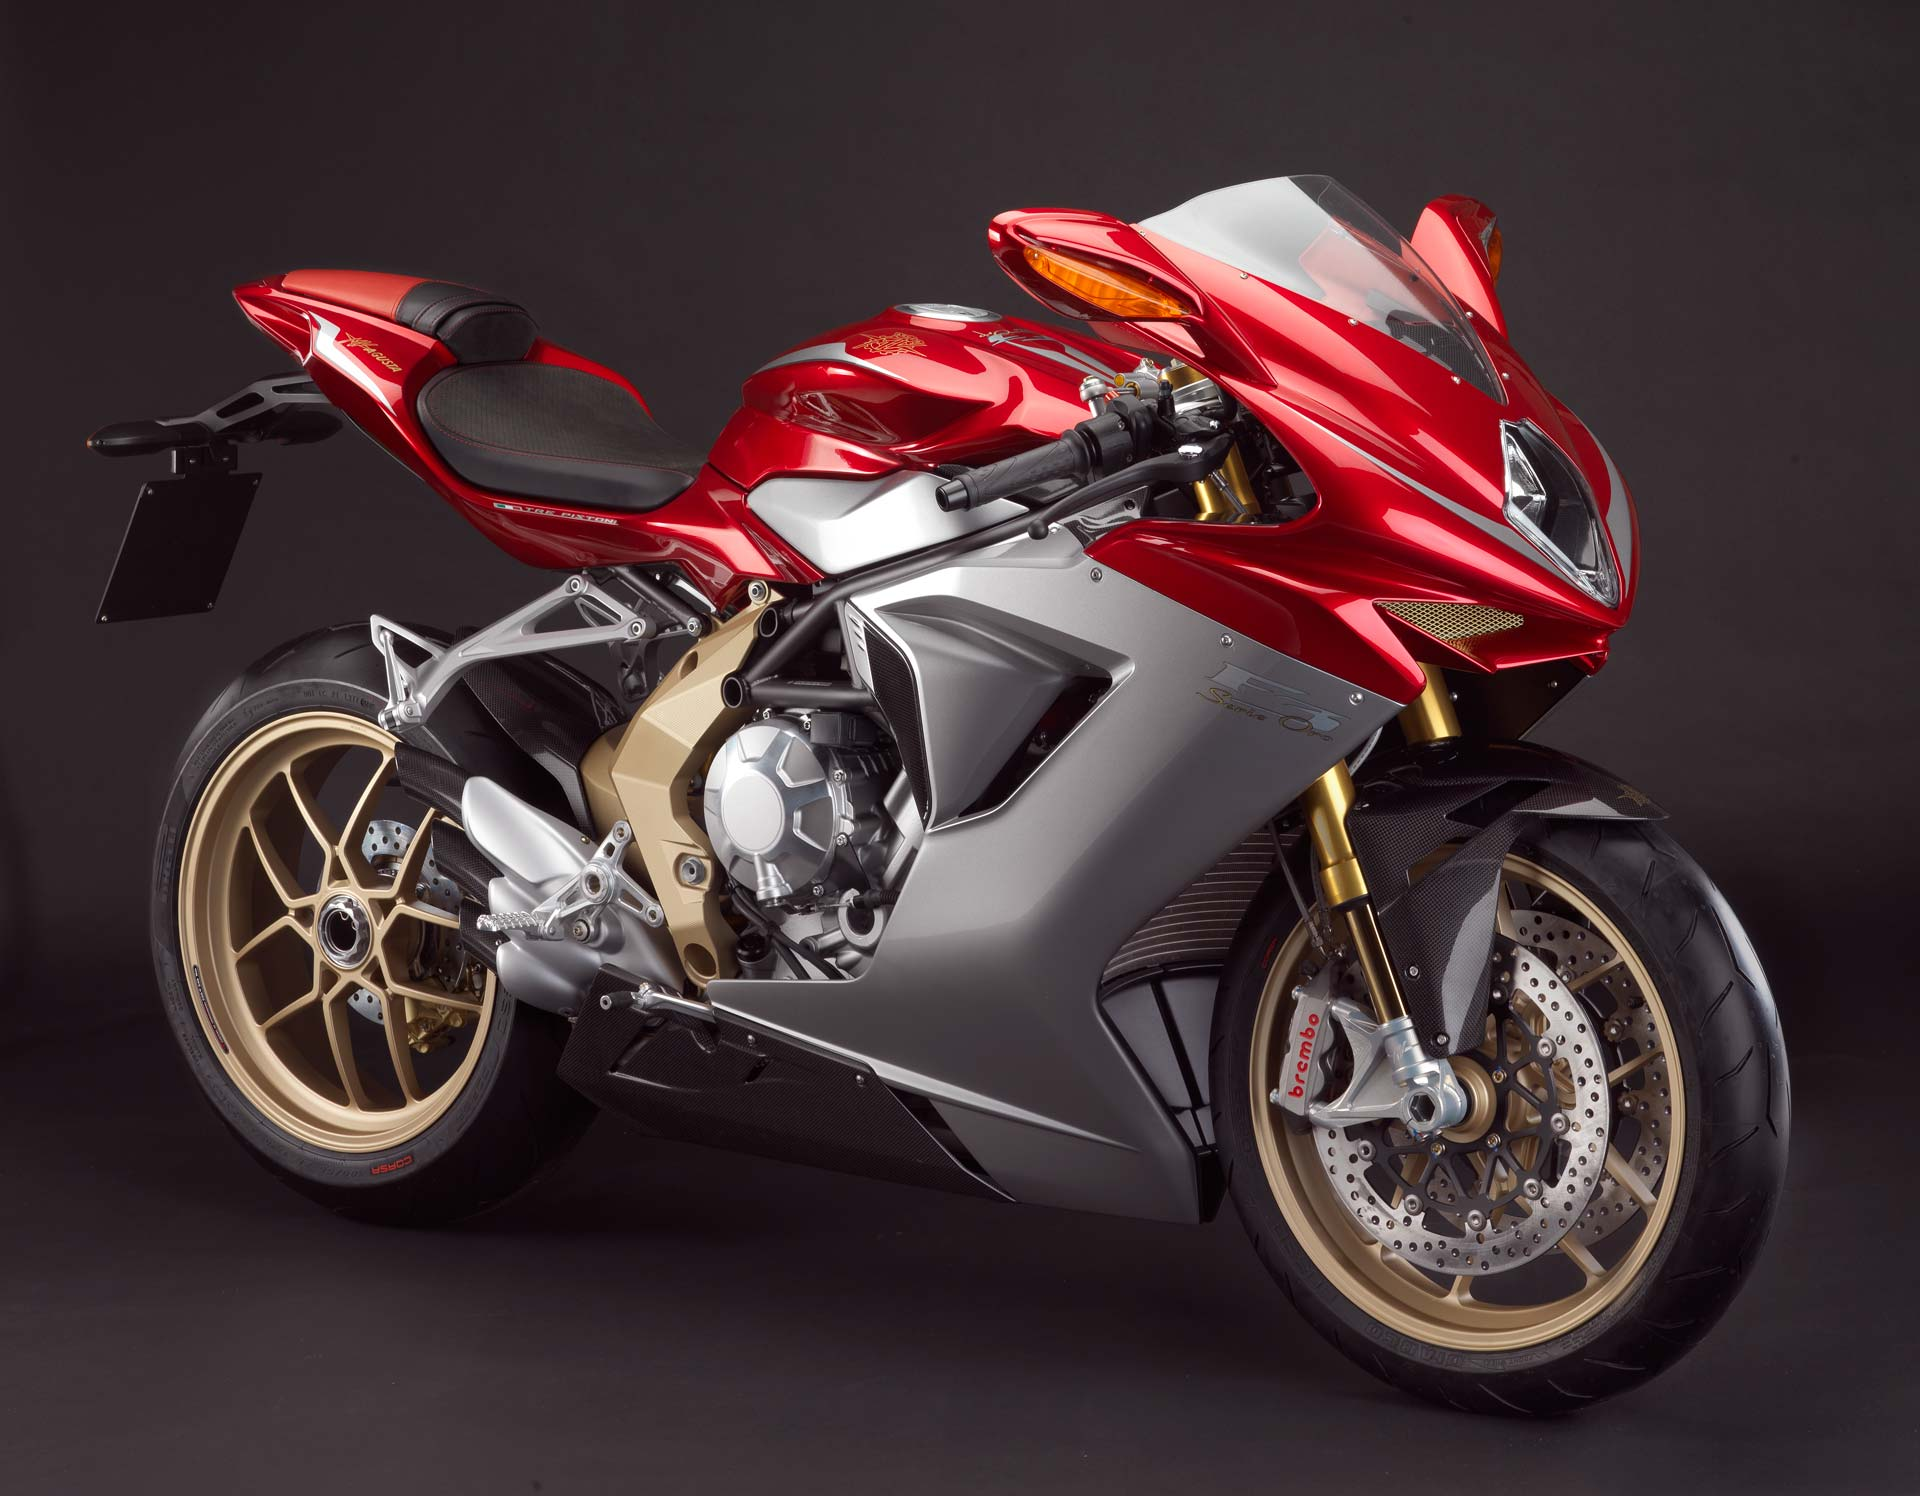 Motorcycles images MV AGUSTA F3 SERIE ORO SPECIAL EDITION HD ...